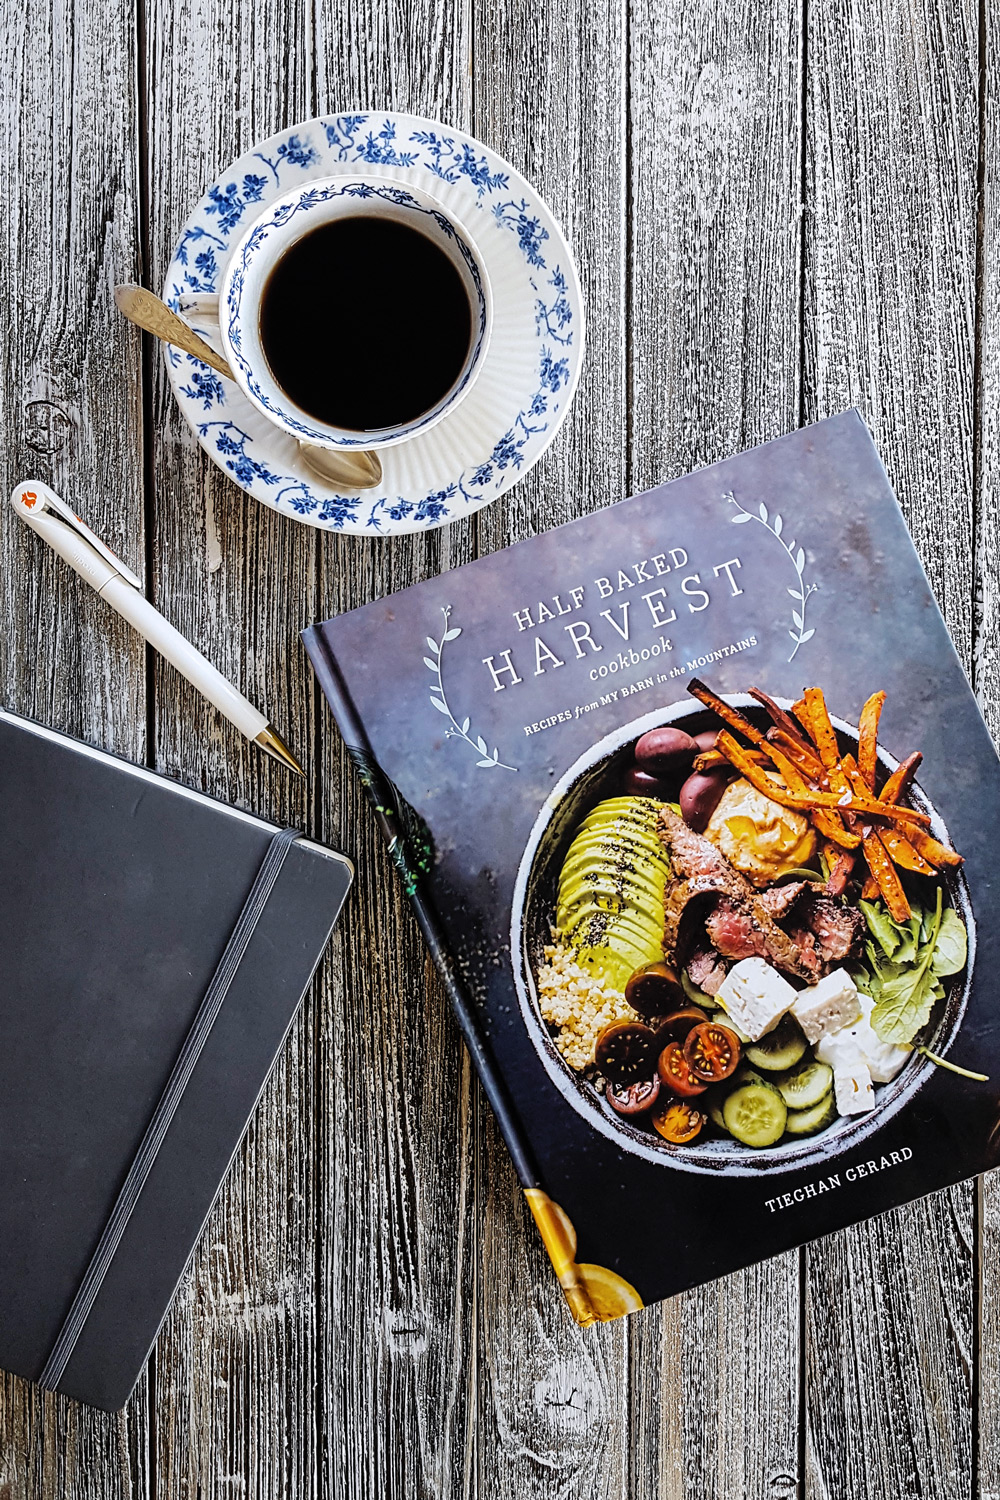 Full of bright, beautiful photography, Tieghan Gerard's first #cookbook - Half Baked Harvest – will inspire you to cook creatively everyday. Check out my full review on the blog! #halfbakedharvest #HBHcookbook #cookbookreview #review | FeastInThyme.com